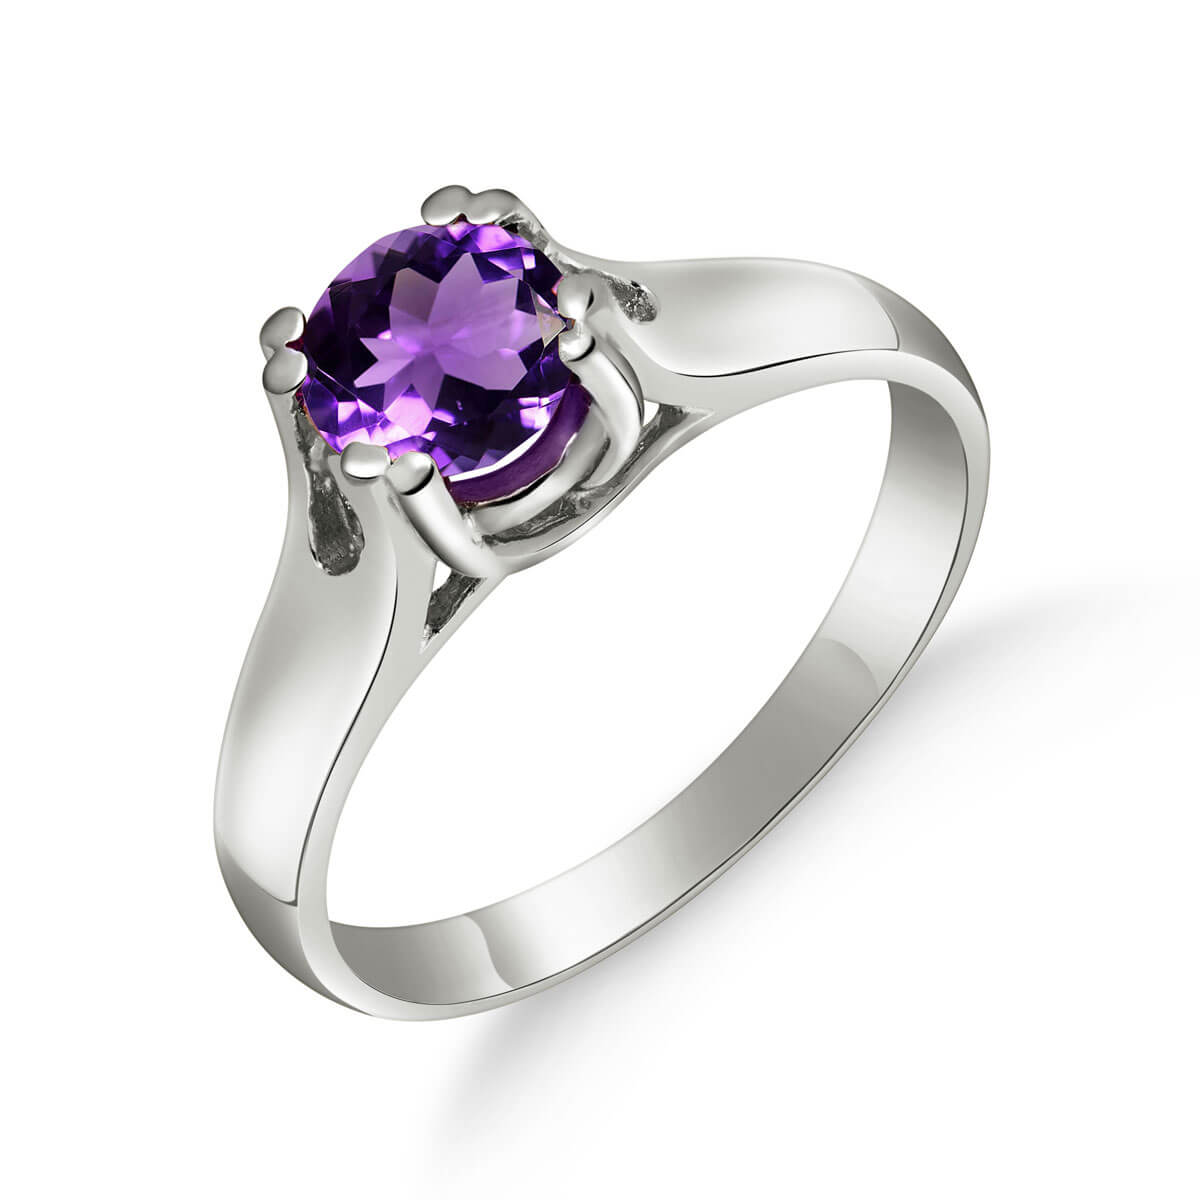 Amethyst Solitaire Ring 1.1 ct in 9ct White Gold